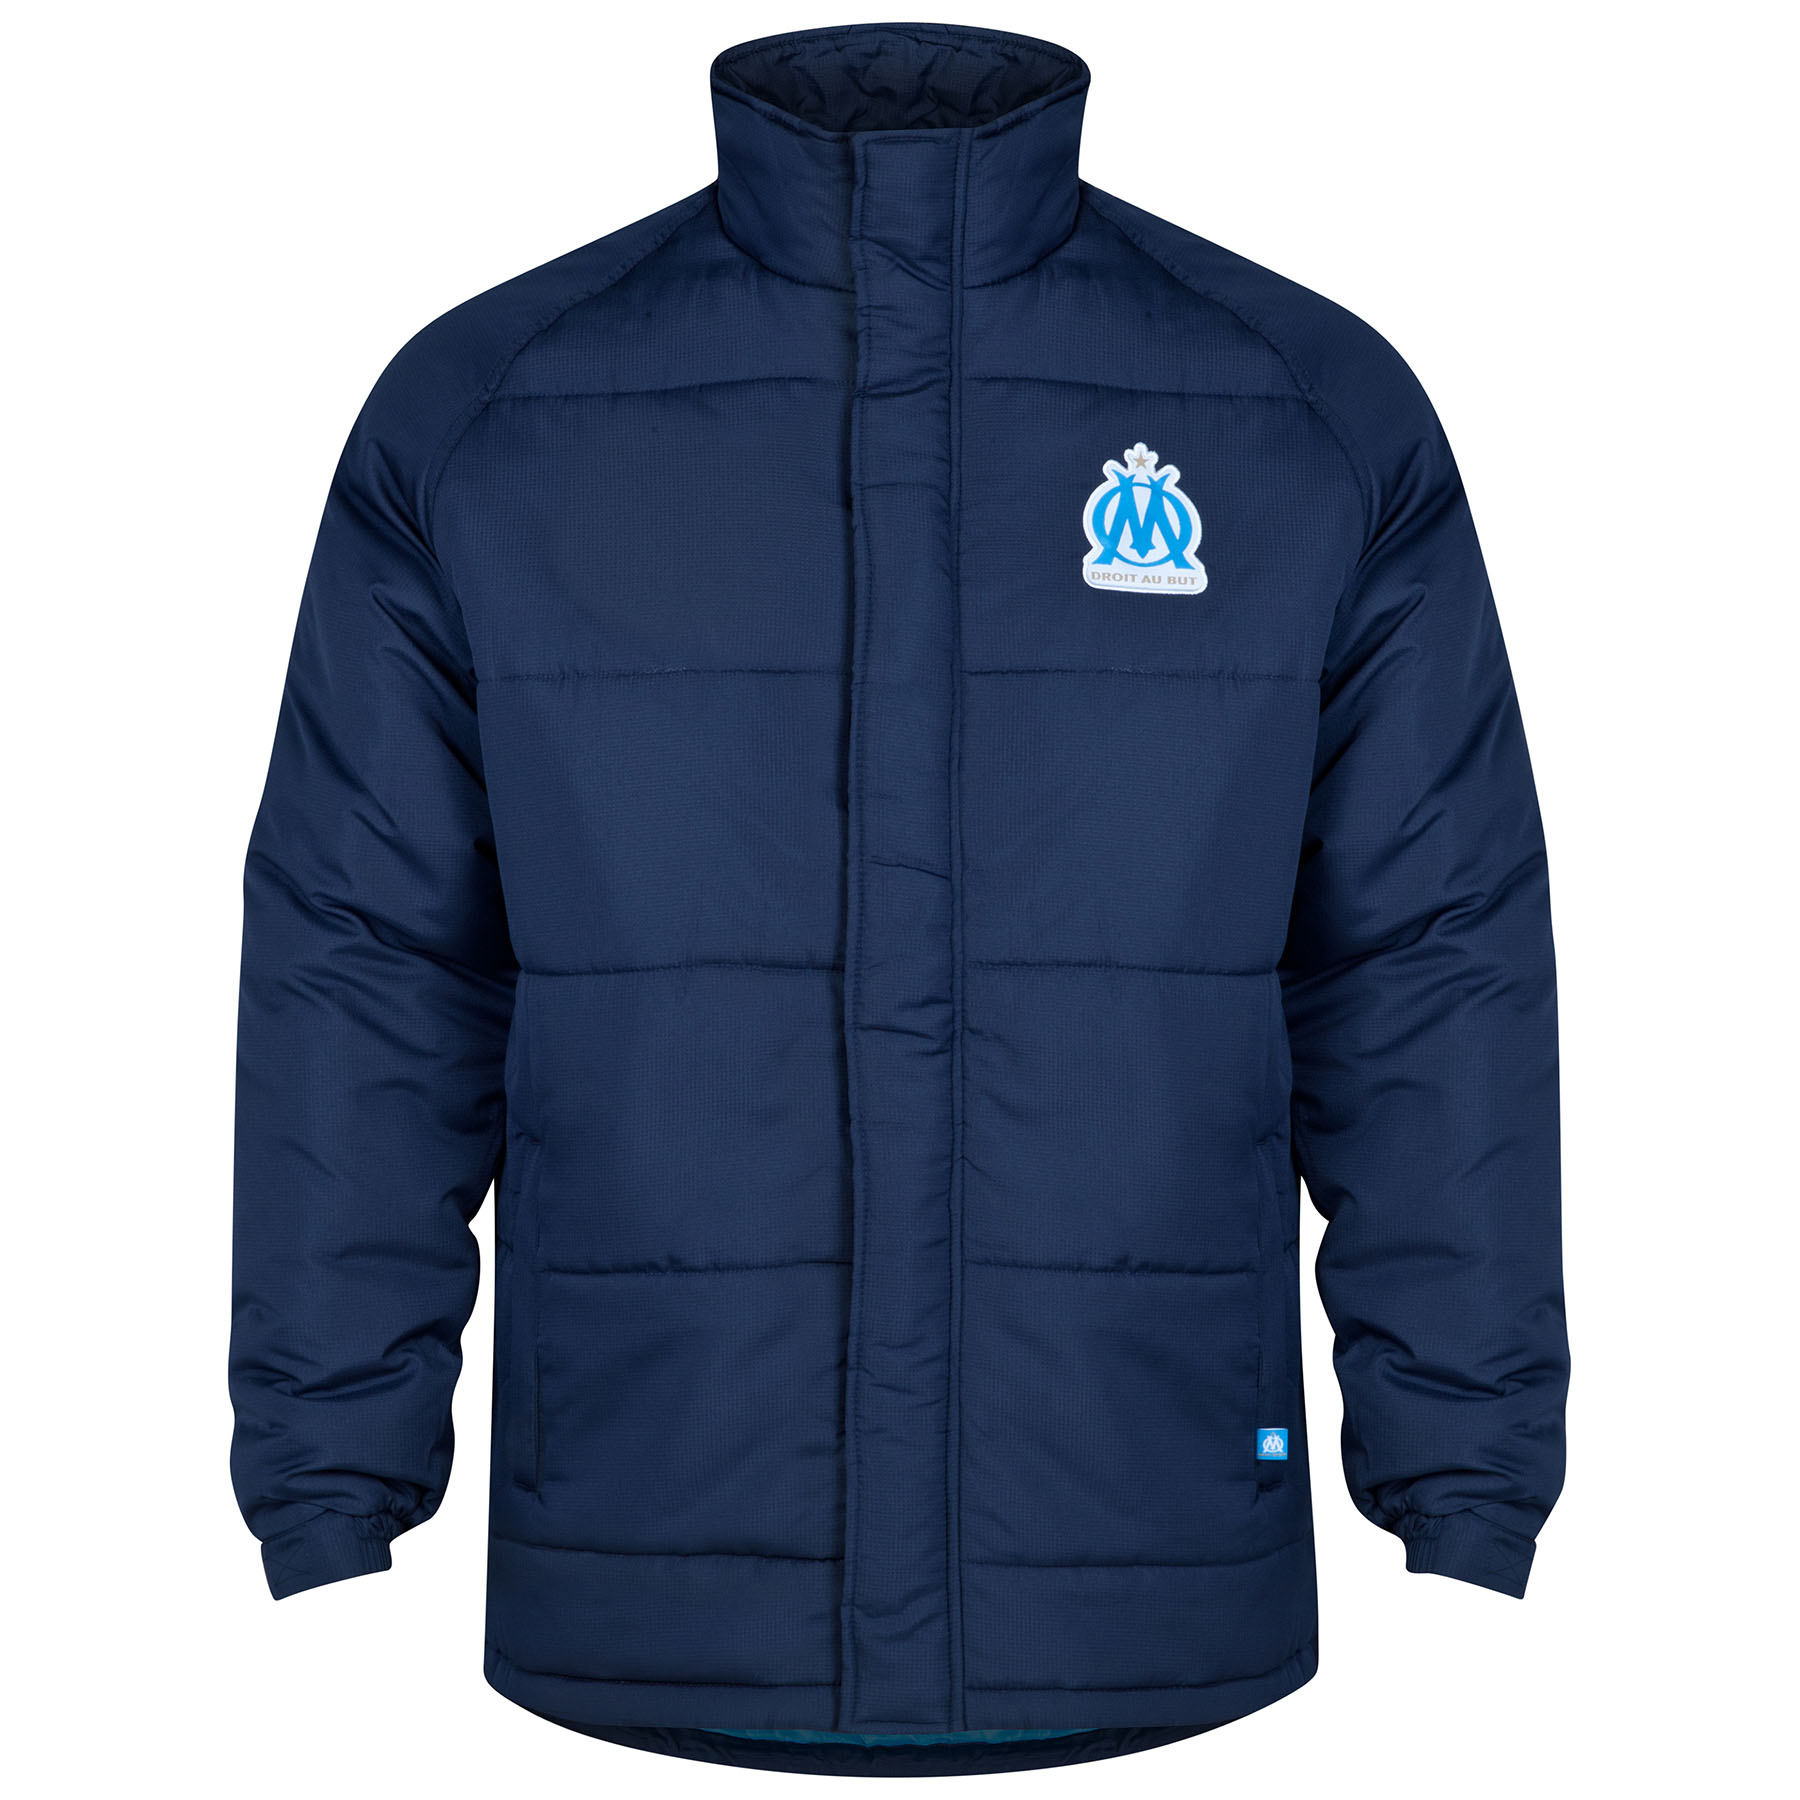 Olympique de Marseille Shower Jacket - Marine - Mens